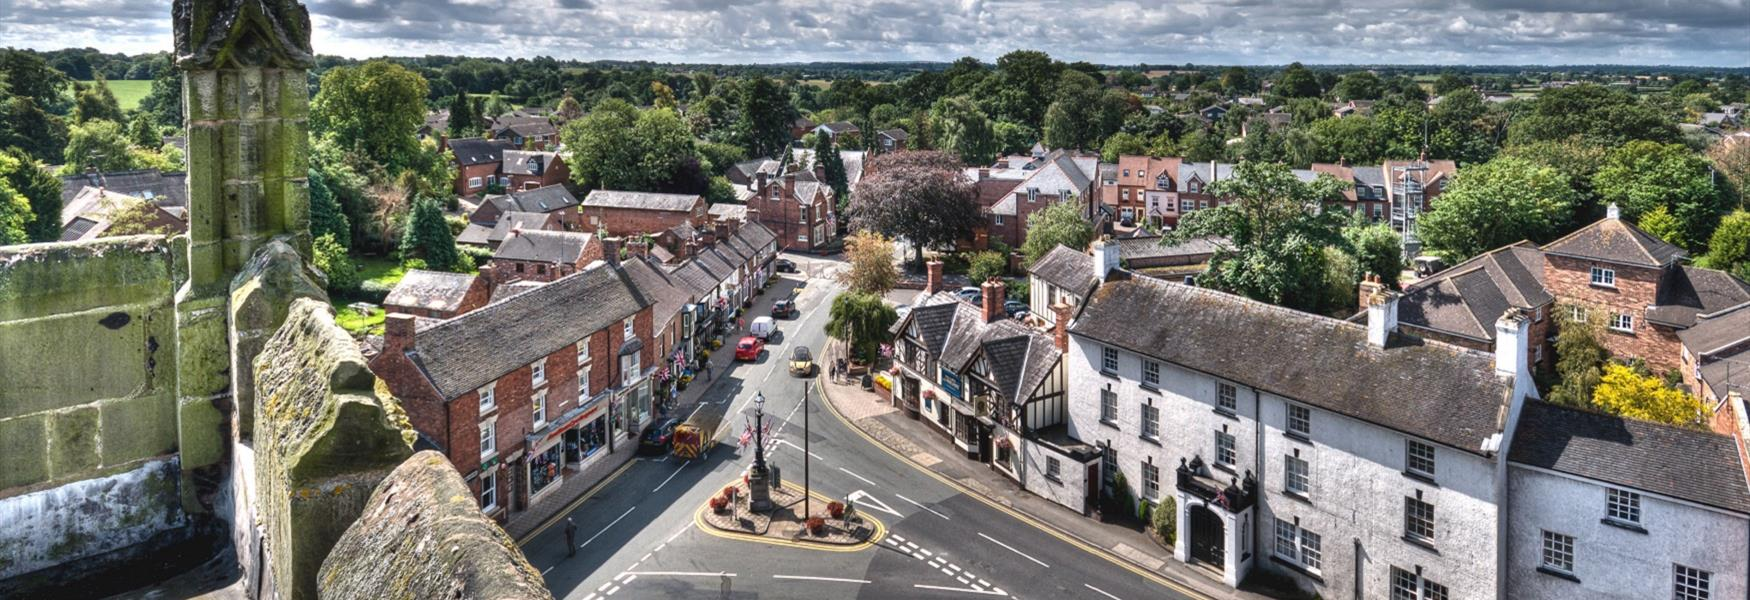 Explore the many villages in Cheshire